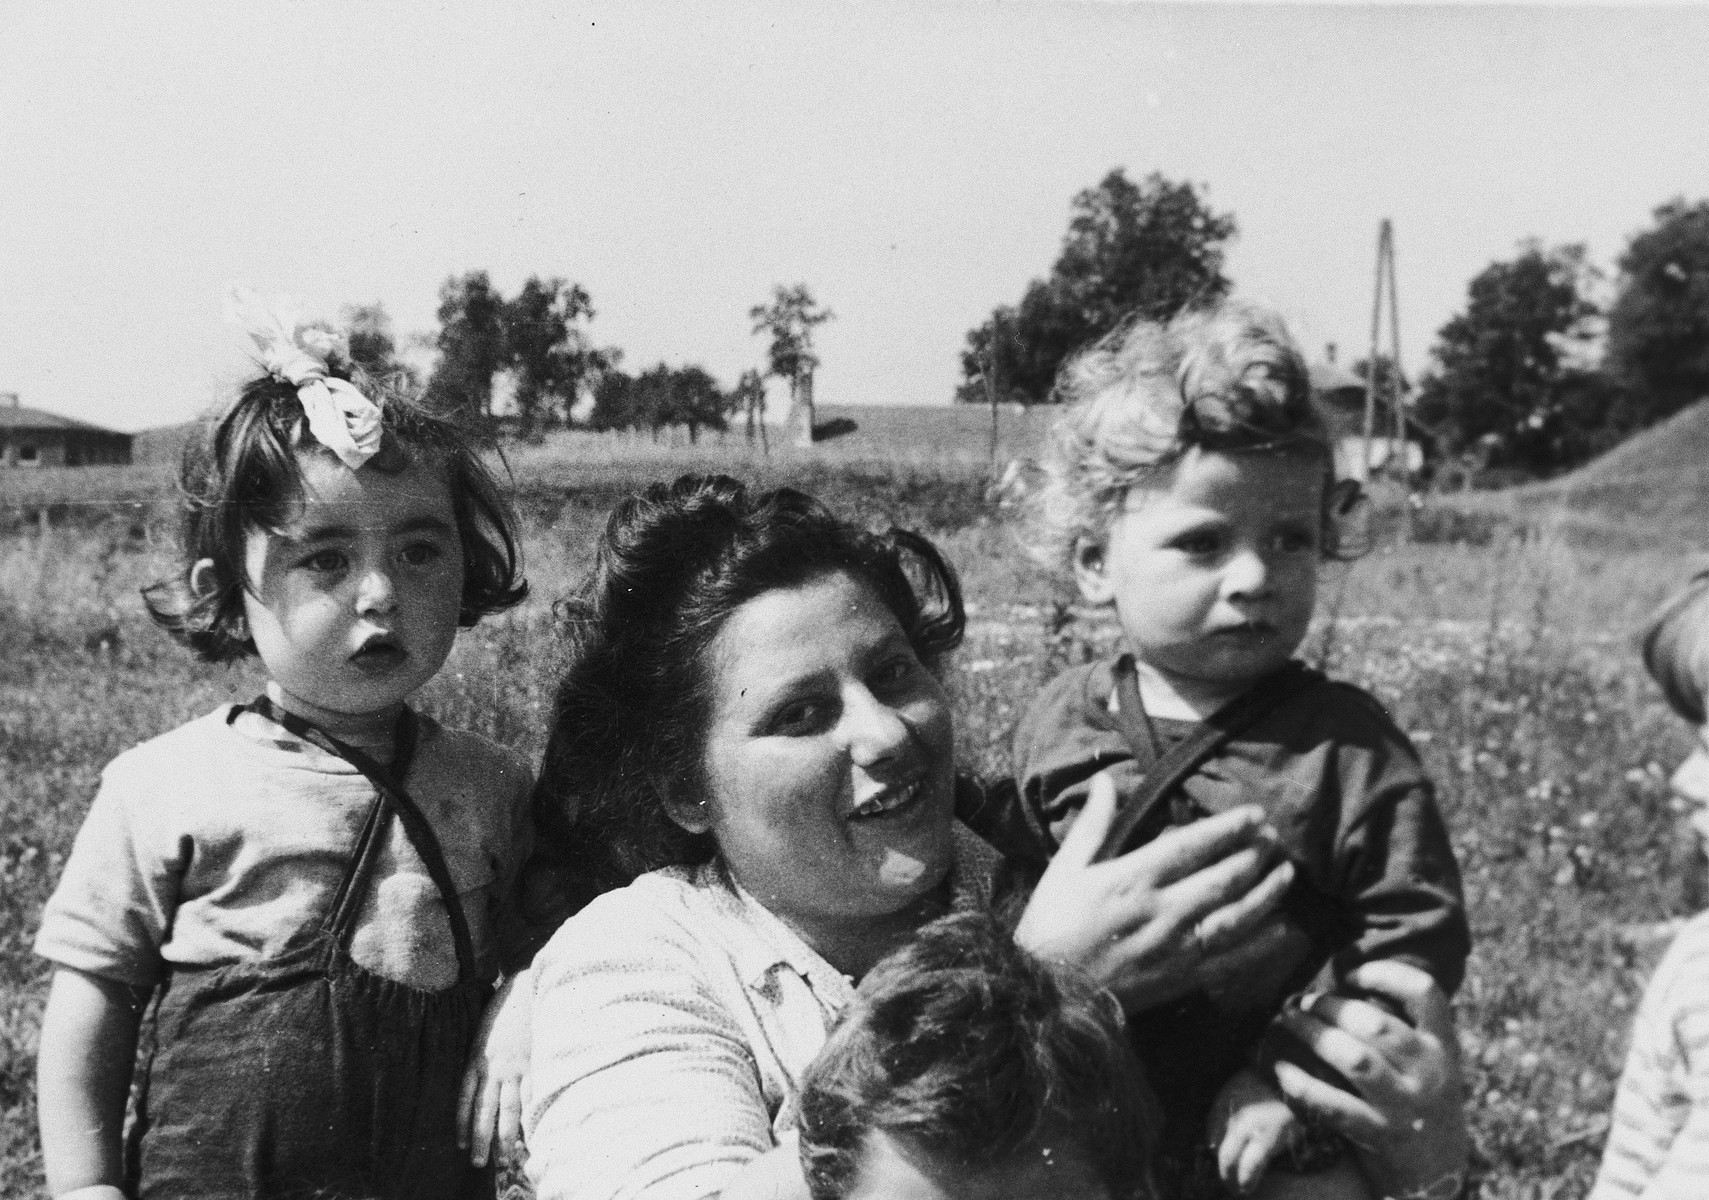 A woman poses with pre-school age children outside in a field at a Jewish displaced persons camp in Austria (probably Bindermichl).